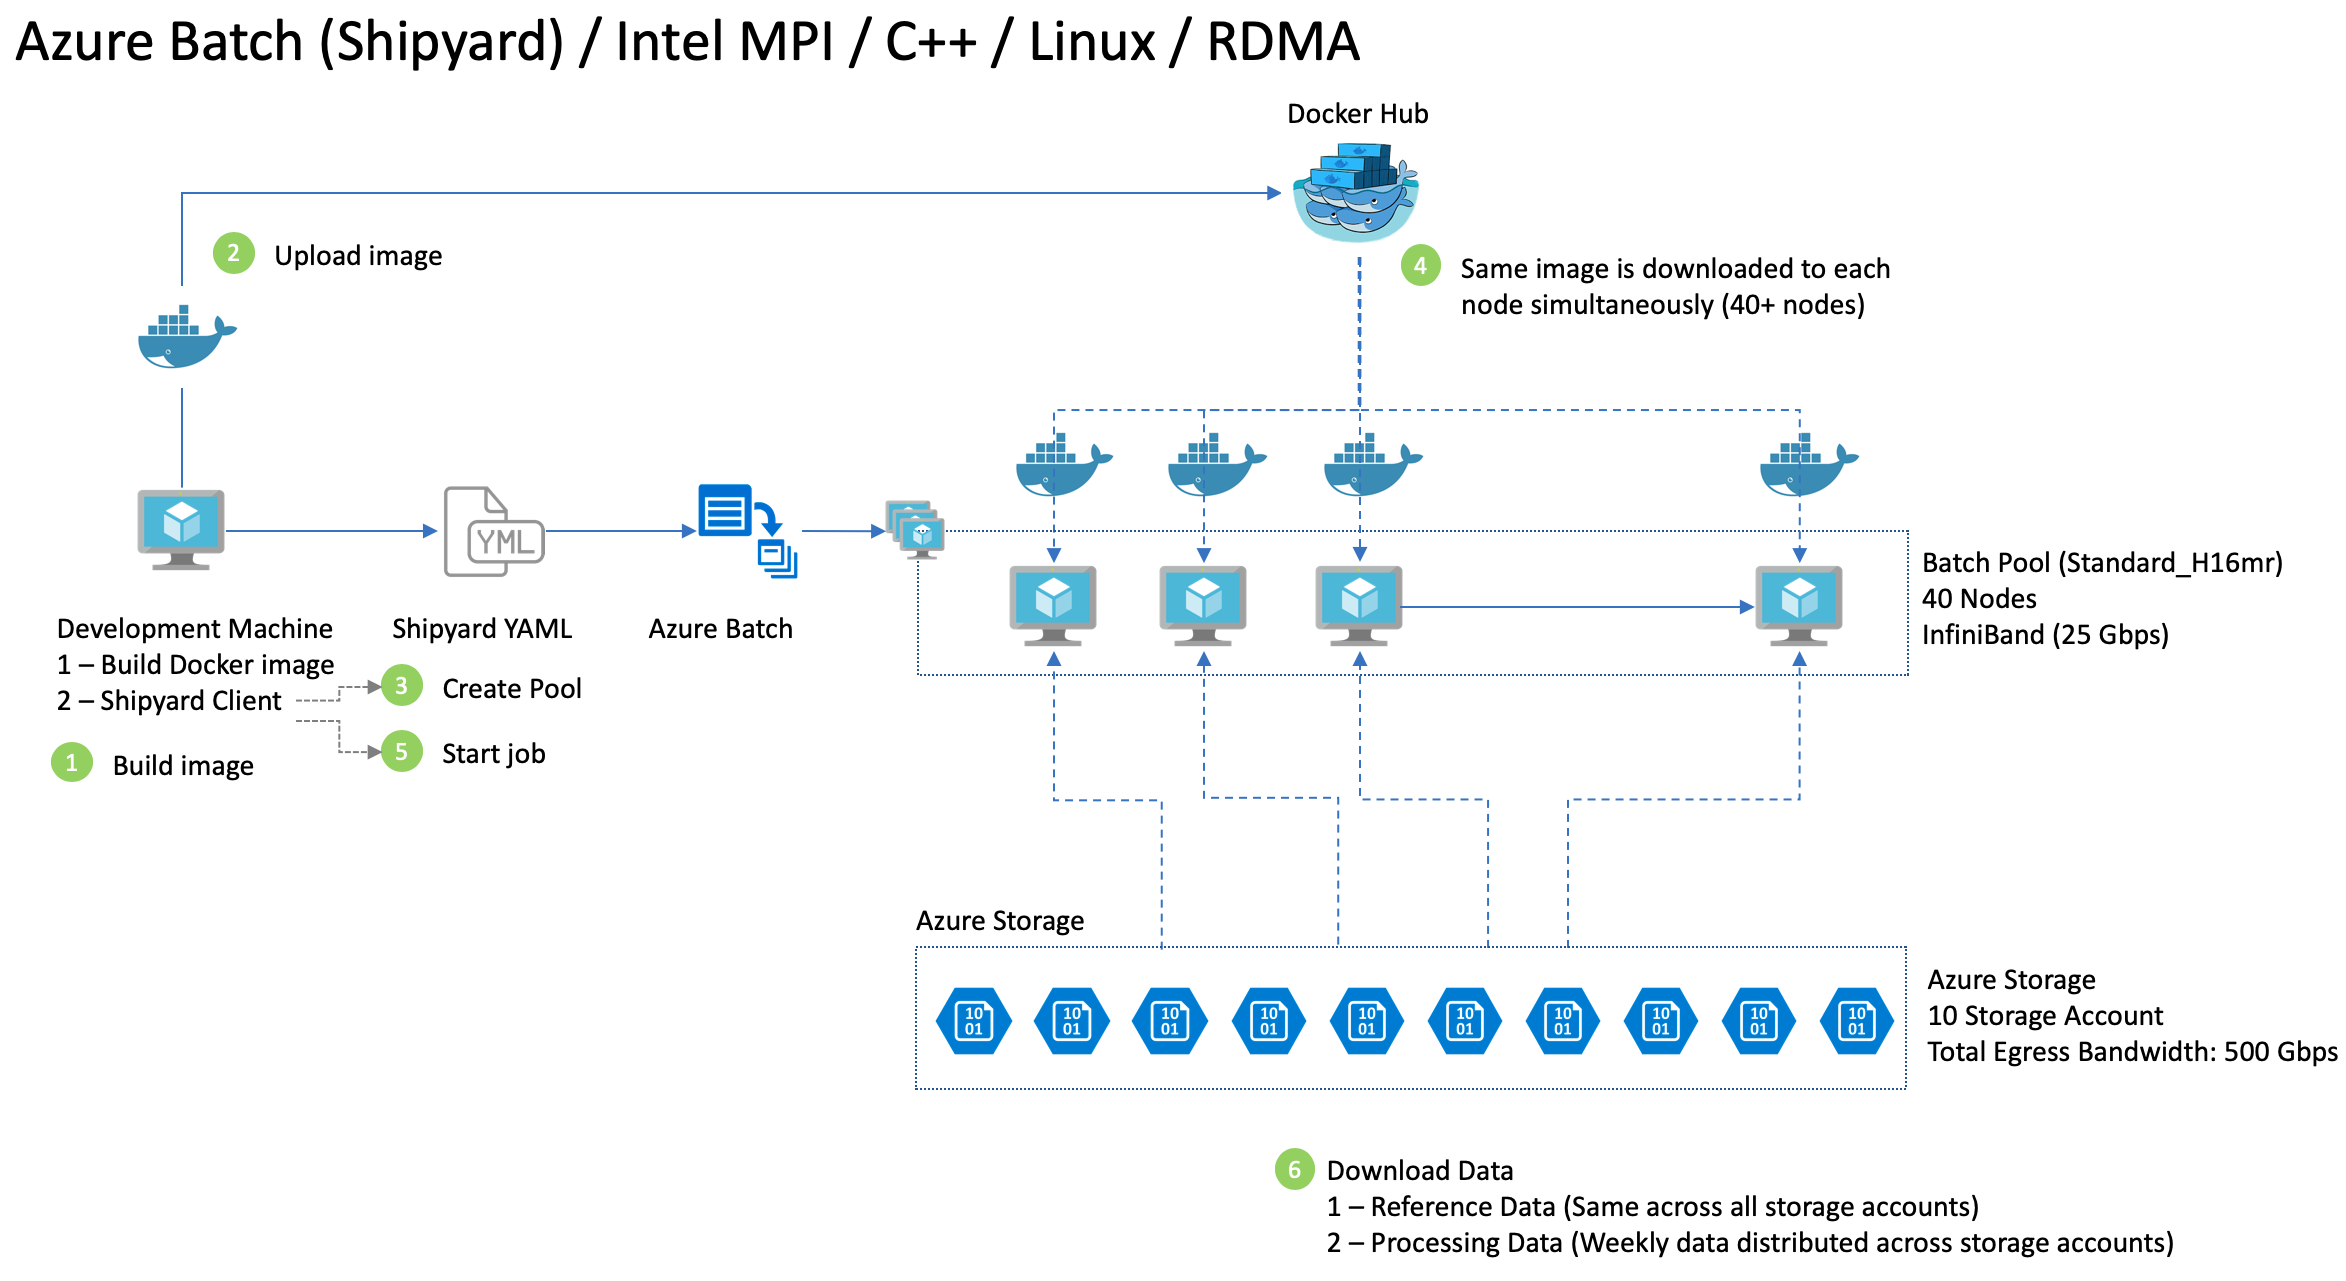 Azure-Shipyard-with-InfiniBand-and-Intel-MPI/README md at